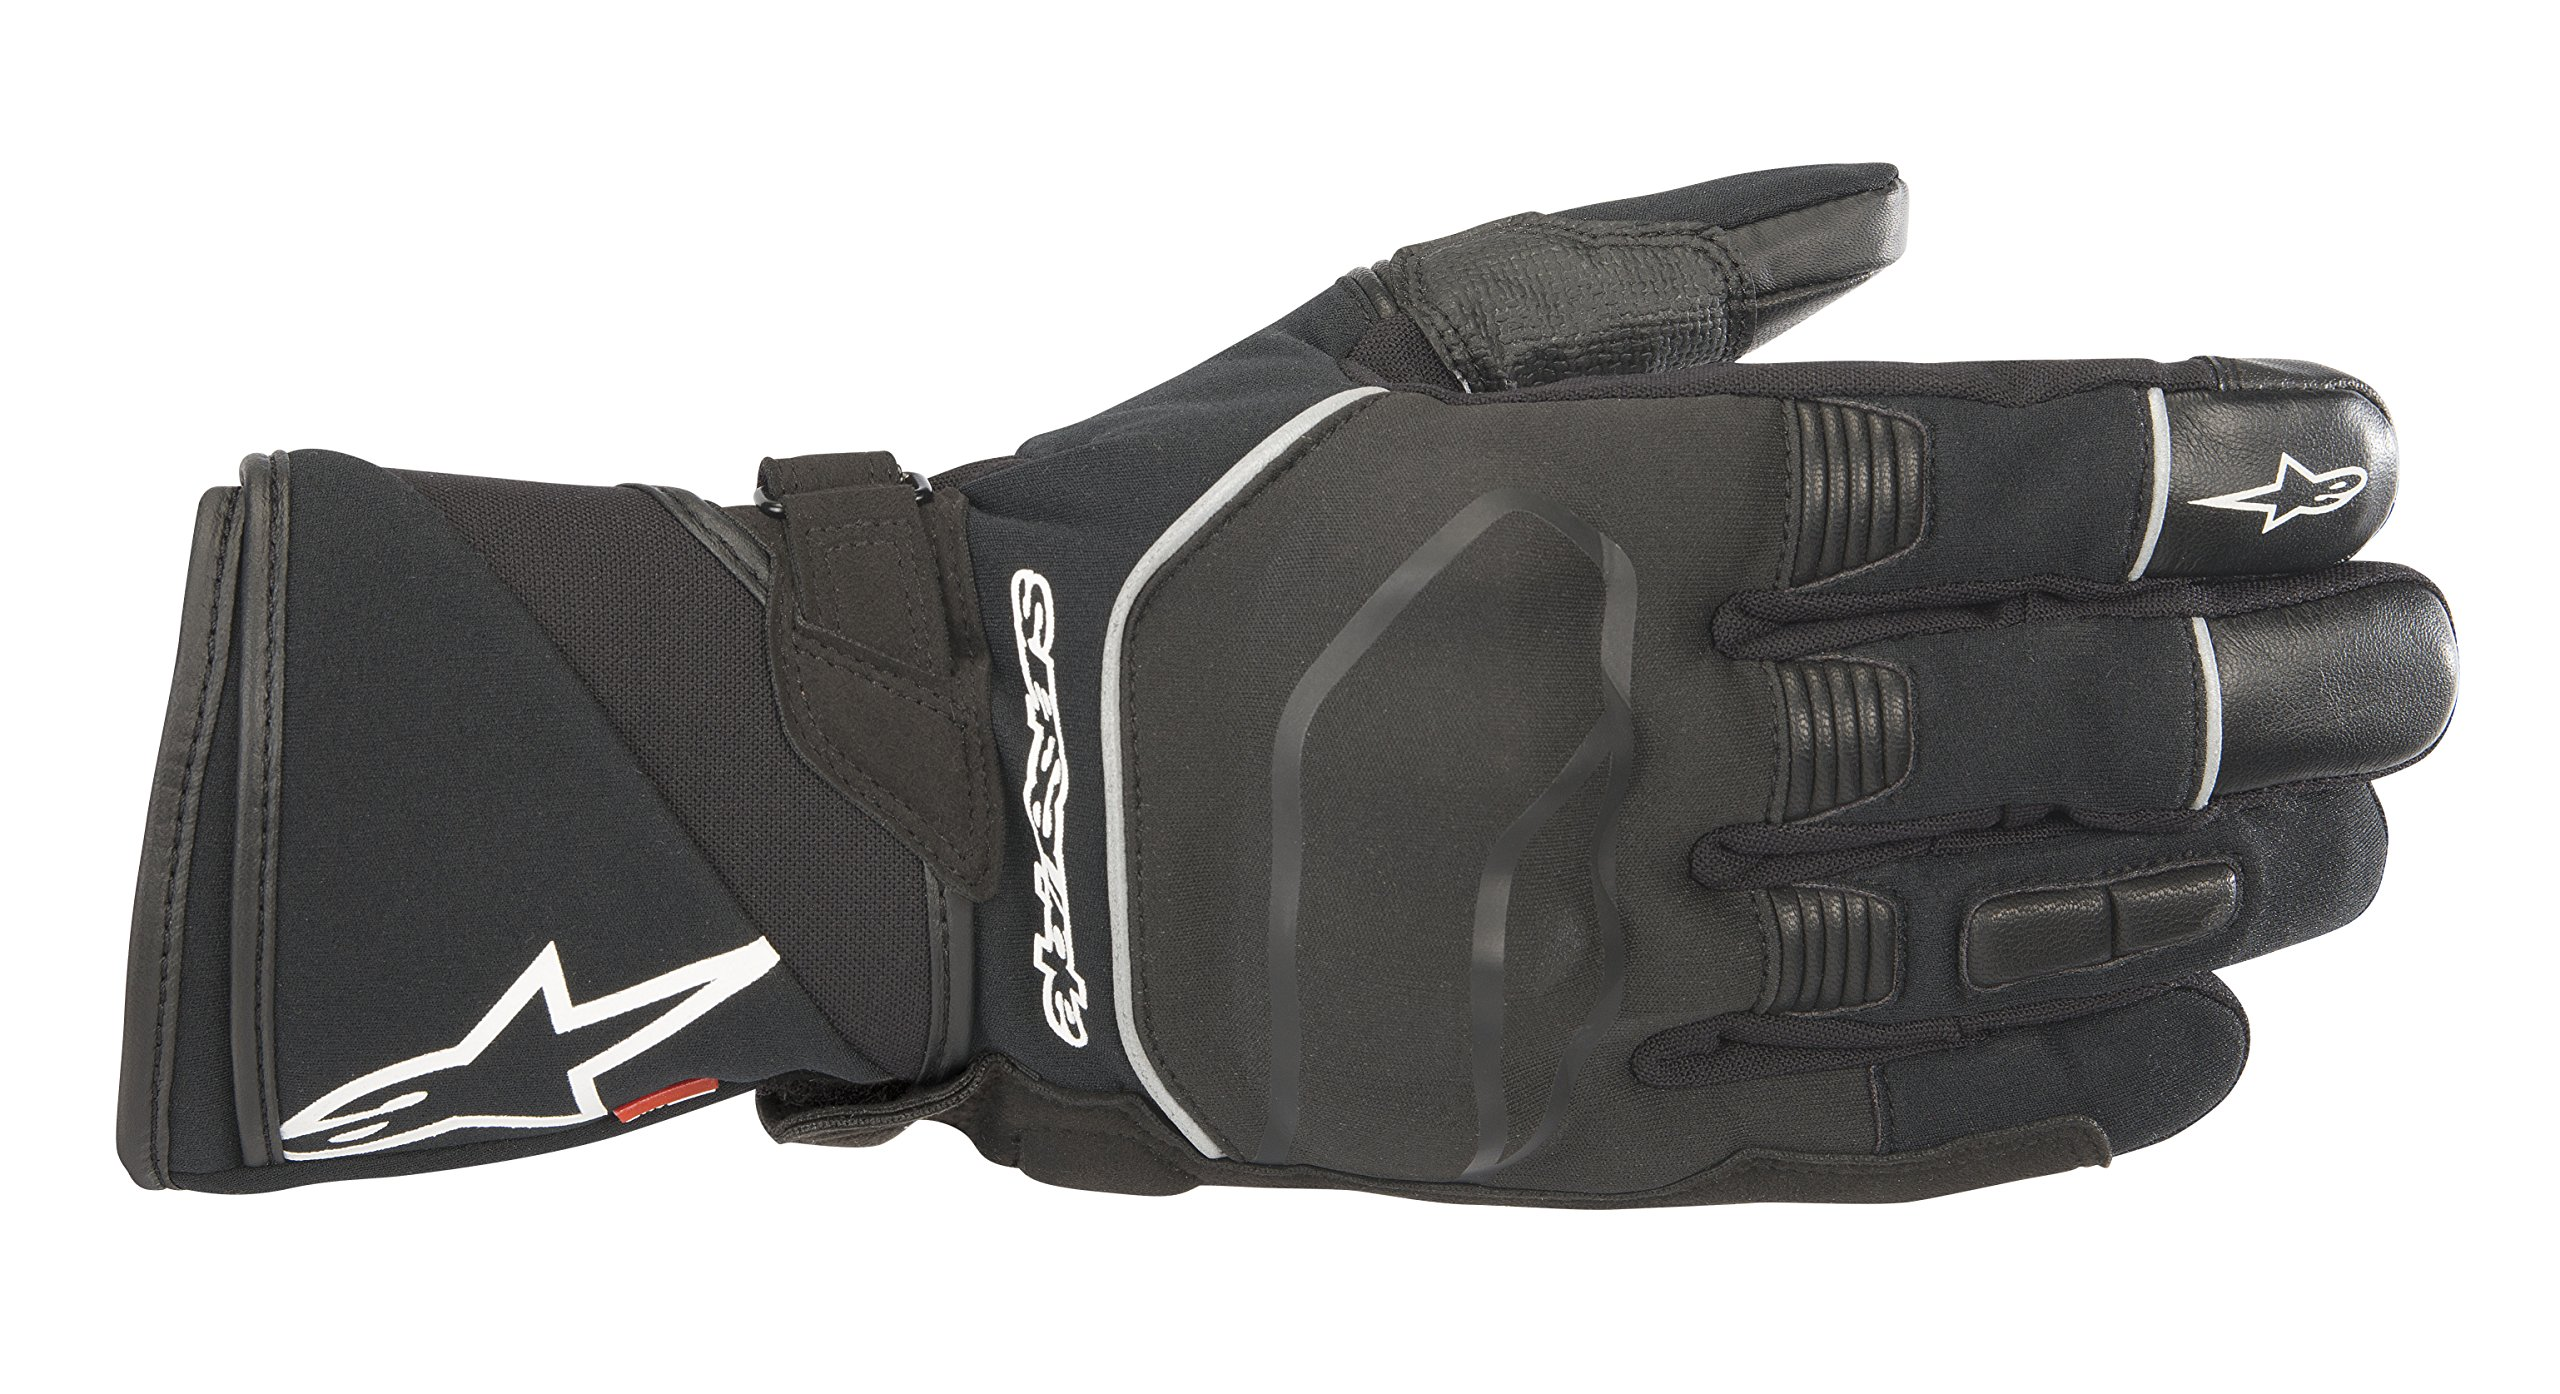 Andes Touring Outdry Waterproof Motorcycle Riding Glove (L, Black)